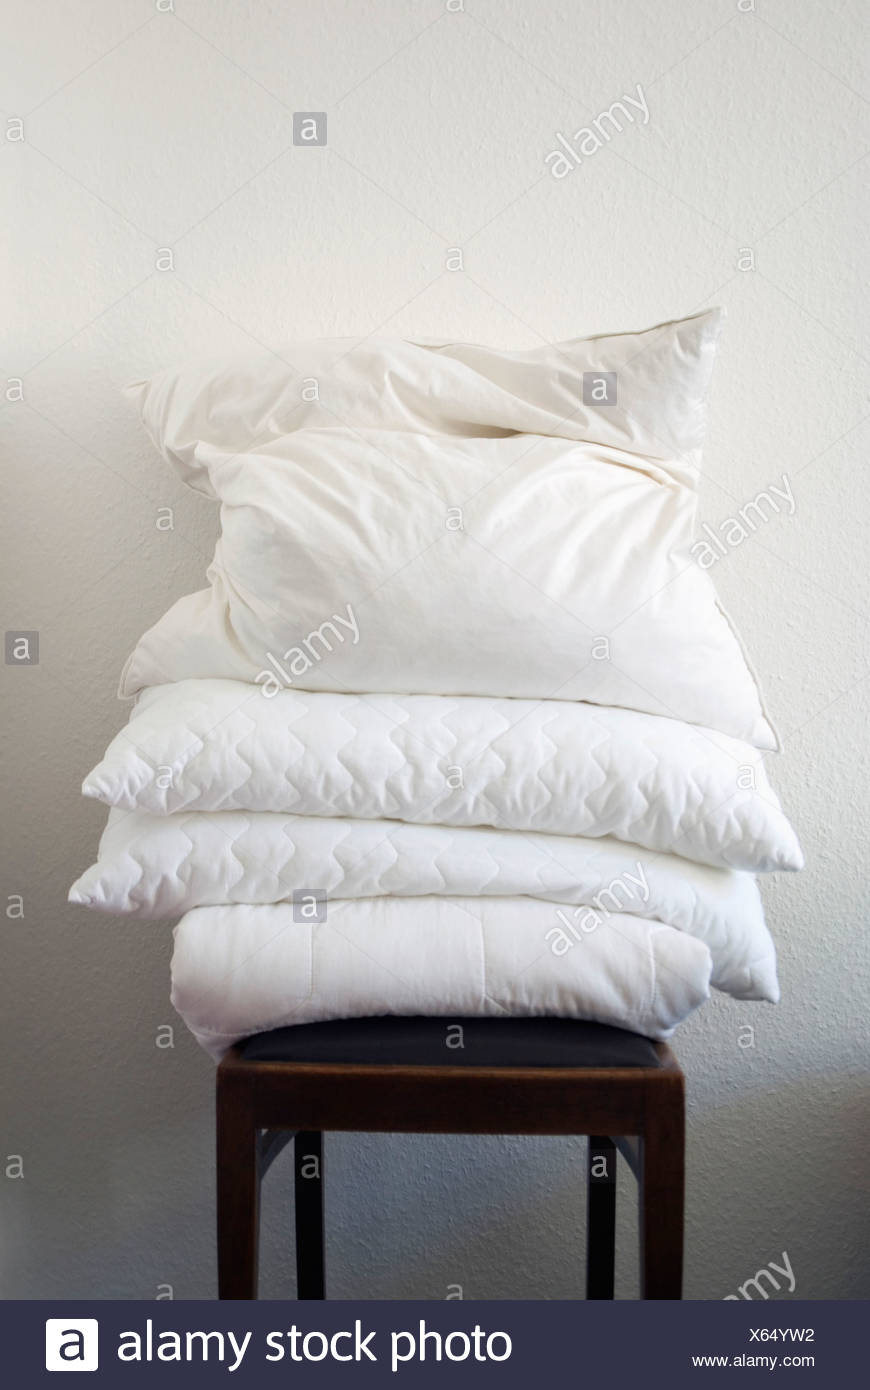 Bedding on chair - Stock Image